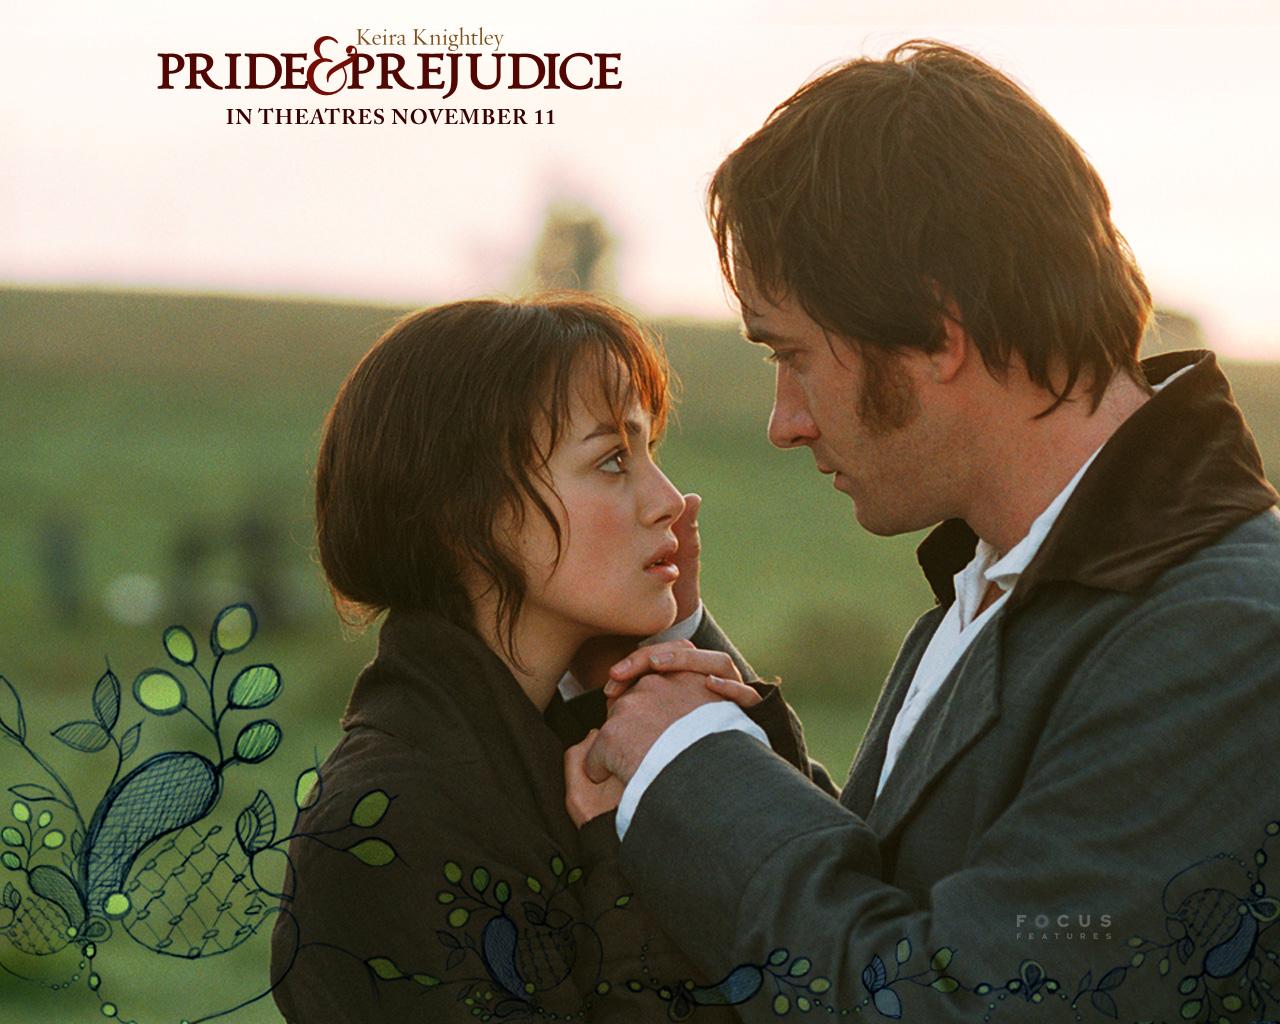 relationships in pride and prejudice Pride and prejudice primarily focuses on elizabeth and the progression of her relationship with mr fitzwilliam darcy, a wealthy, proud man who snubs her after their.